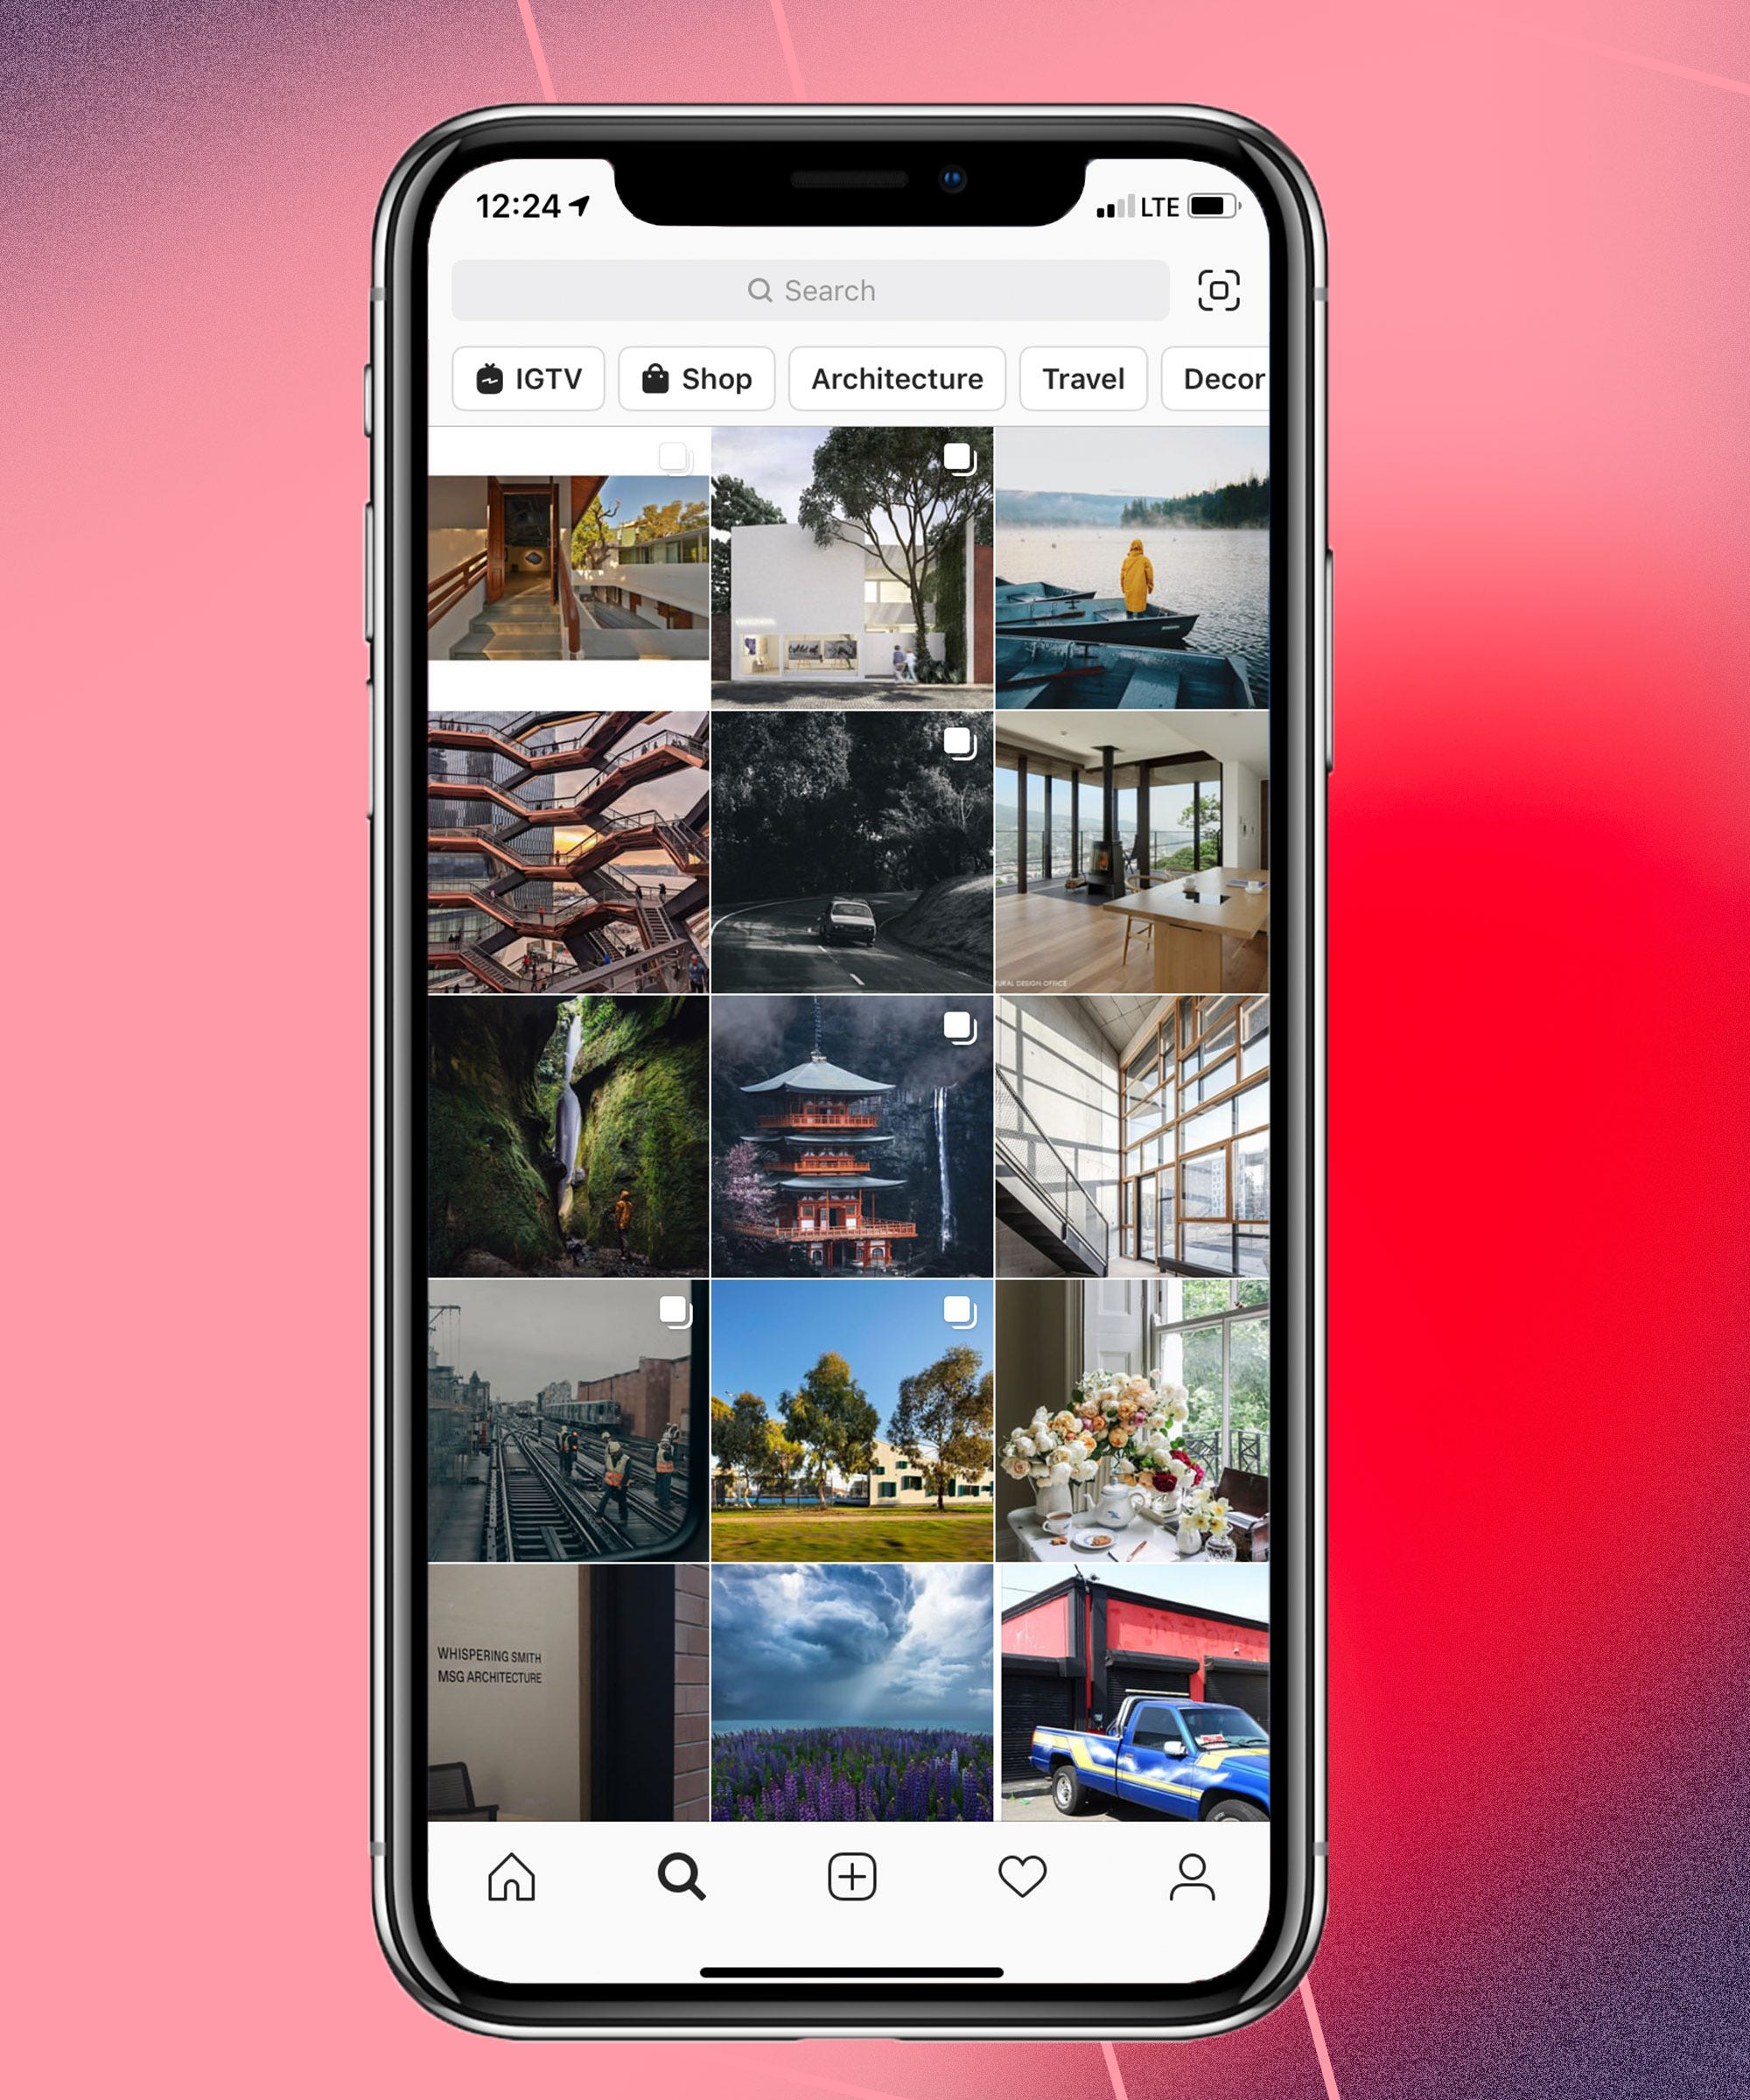 Instagram Explore Has Been Taken Over By Nature Posts & The Internet Is Freaking Out